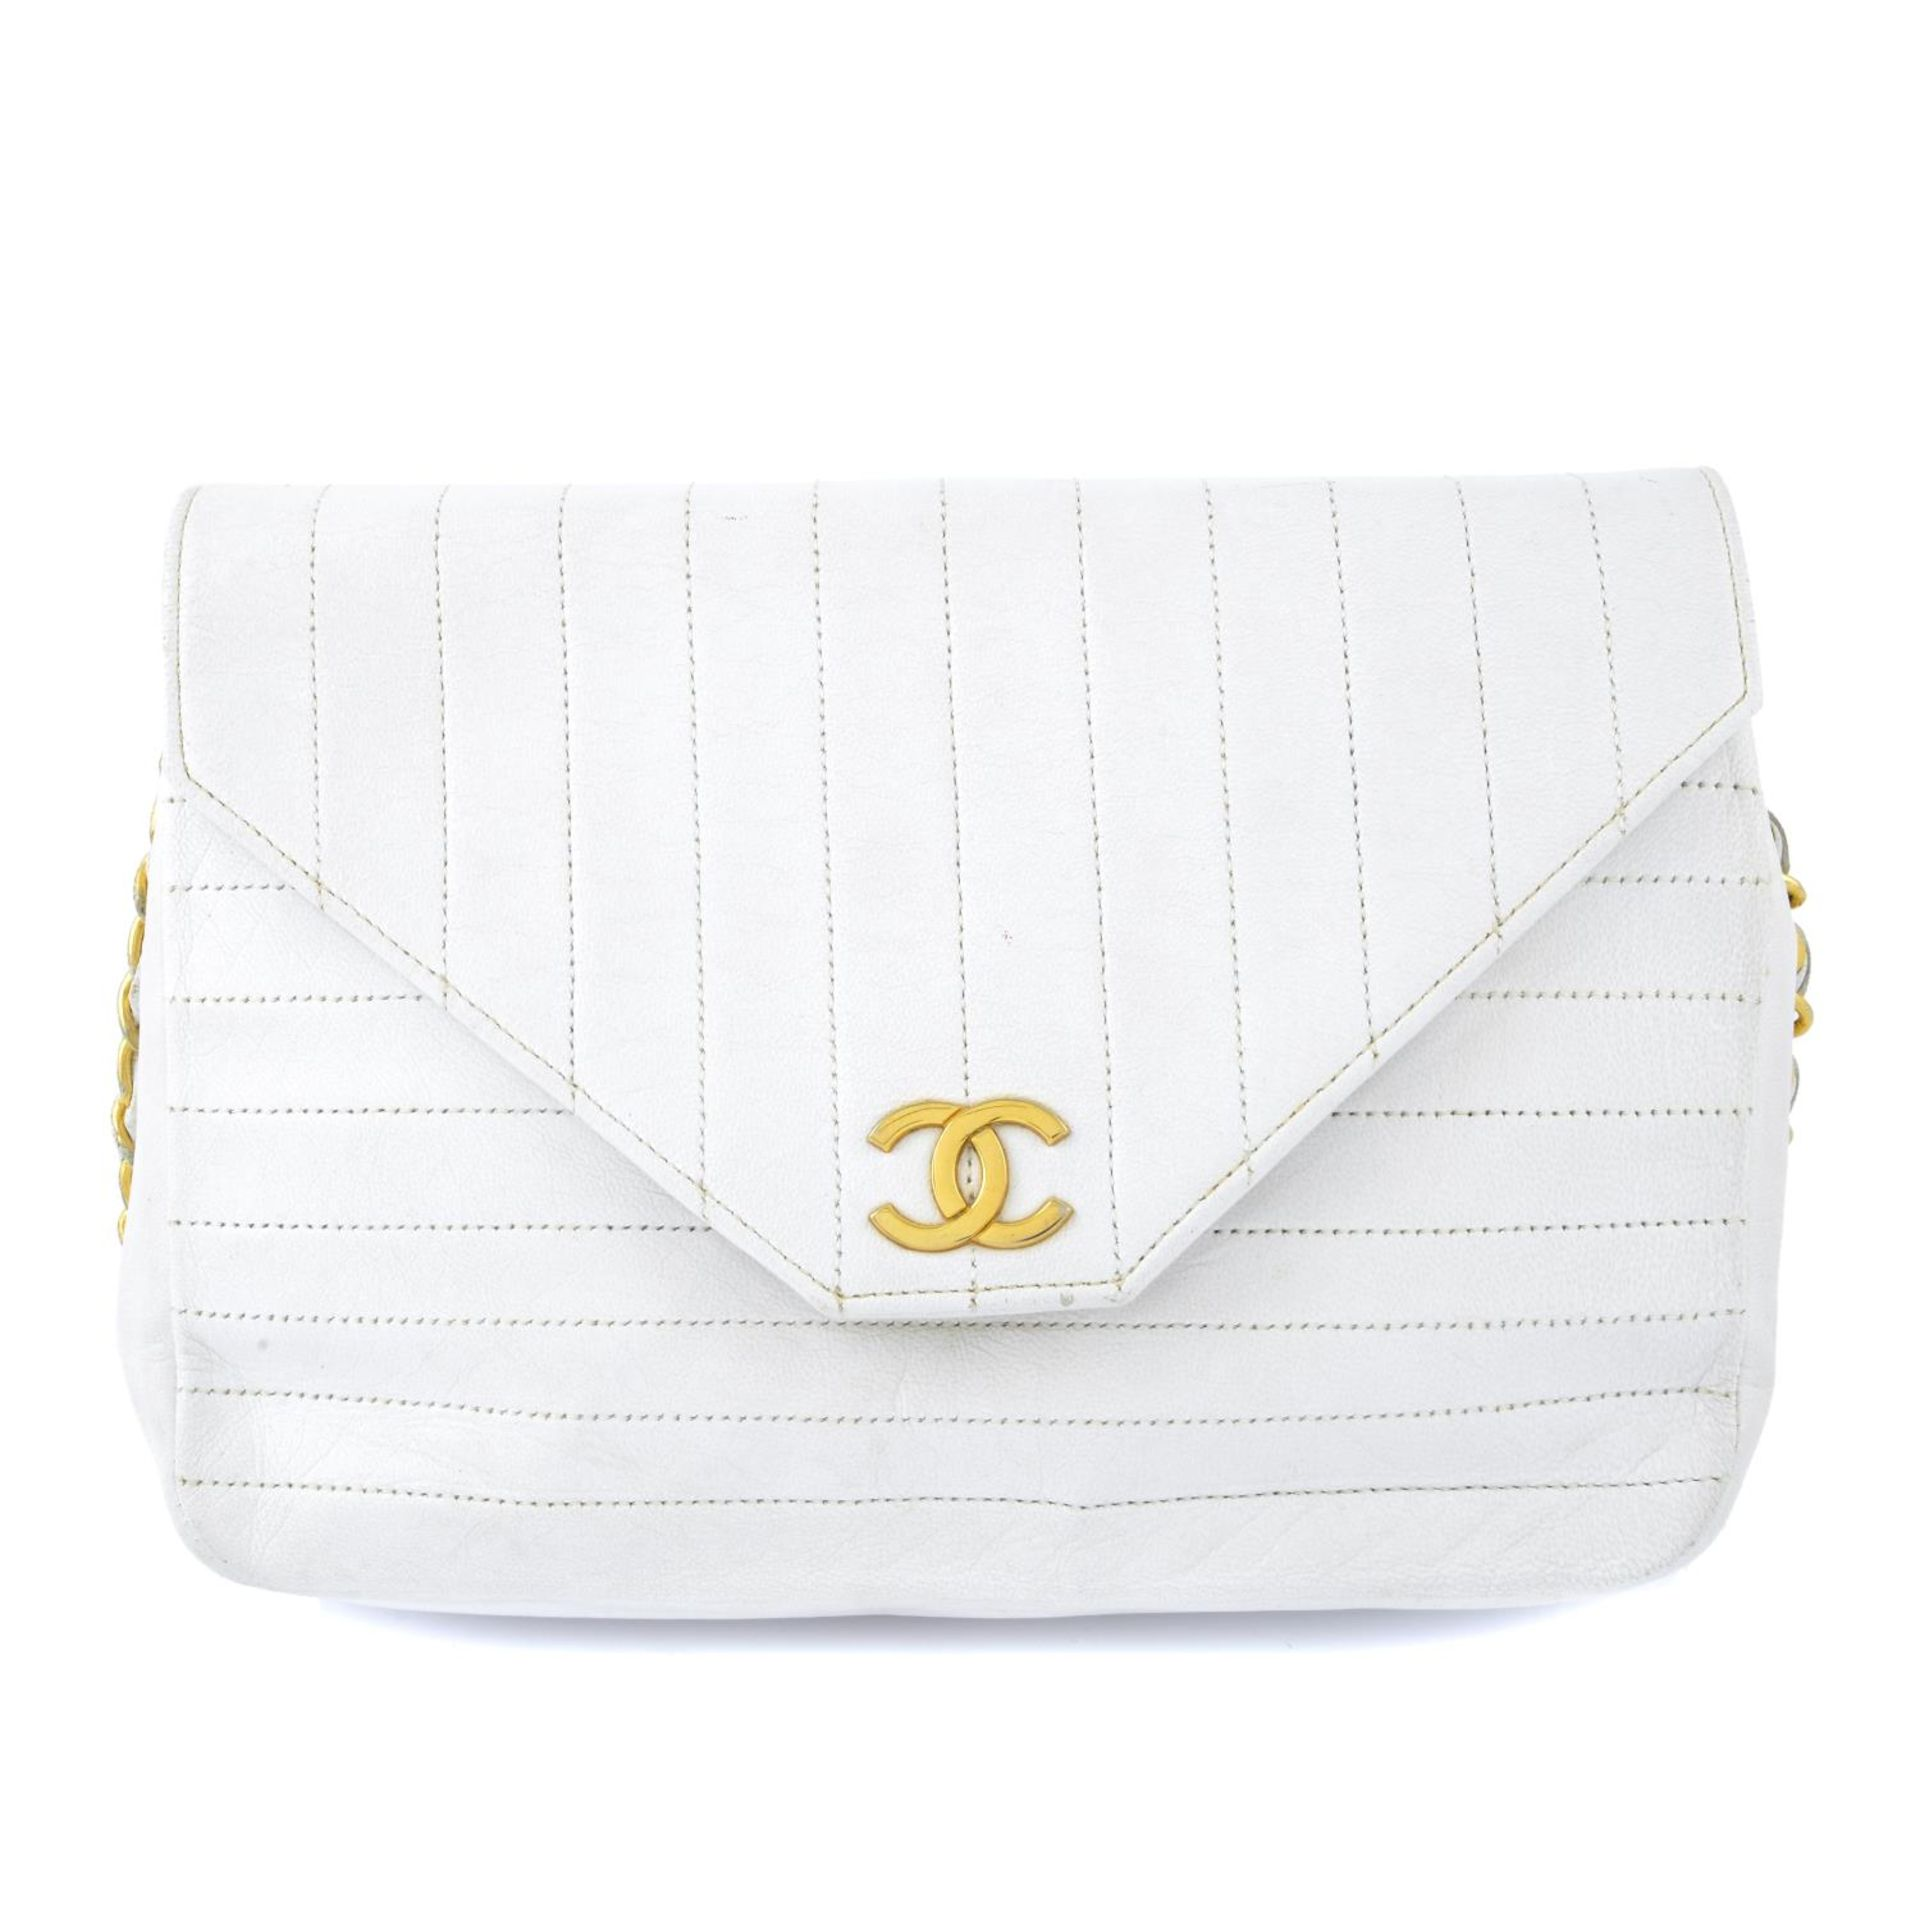 CHANEL - a vintage white single flap handbag.